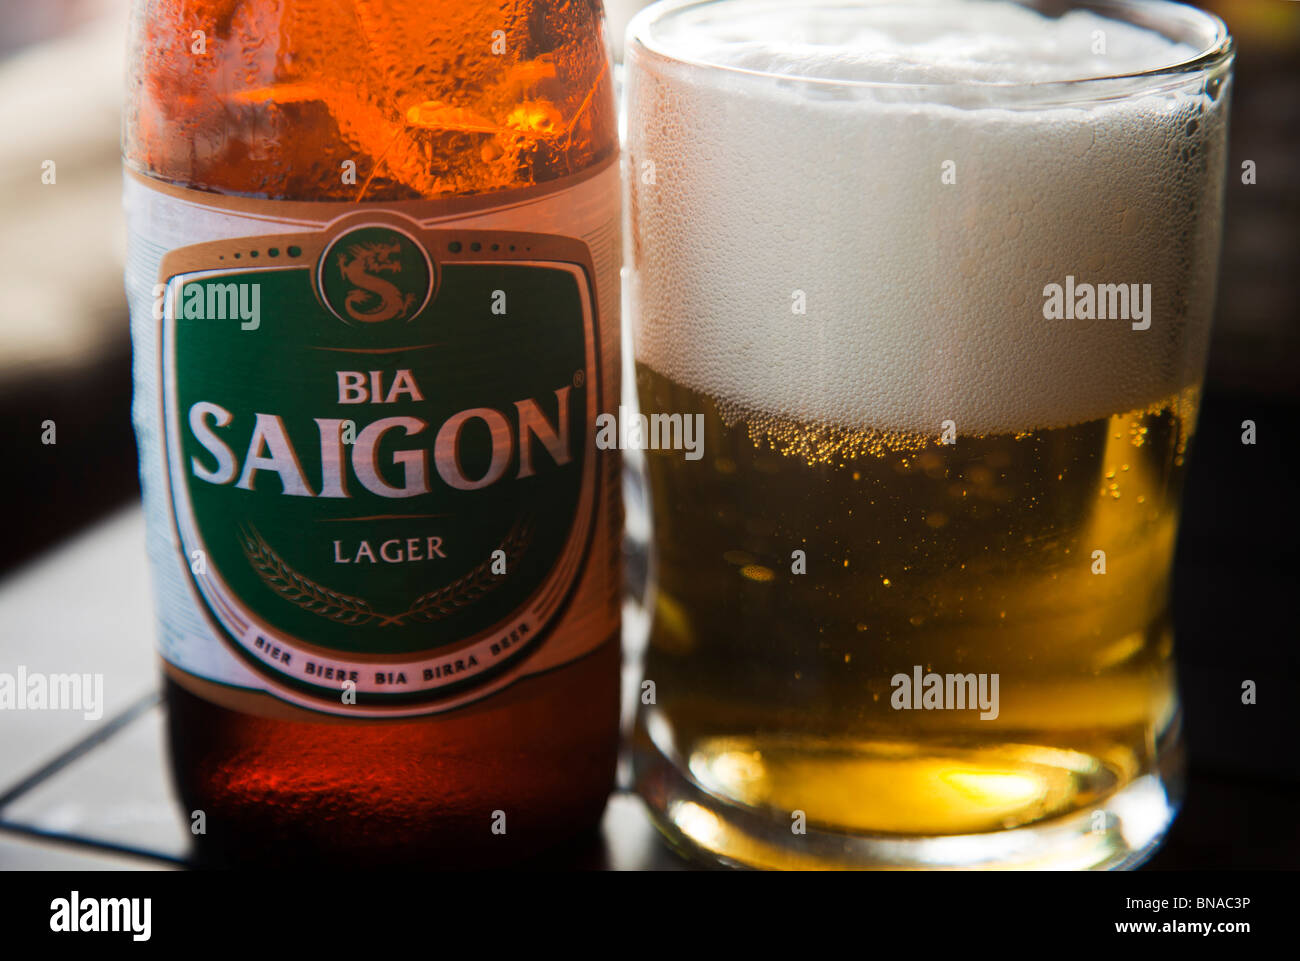 Vietnamese beer Sagon Green label with bottle and full glass - Stock Image